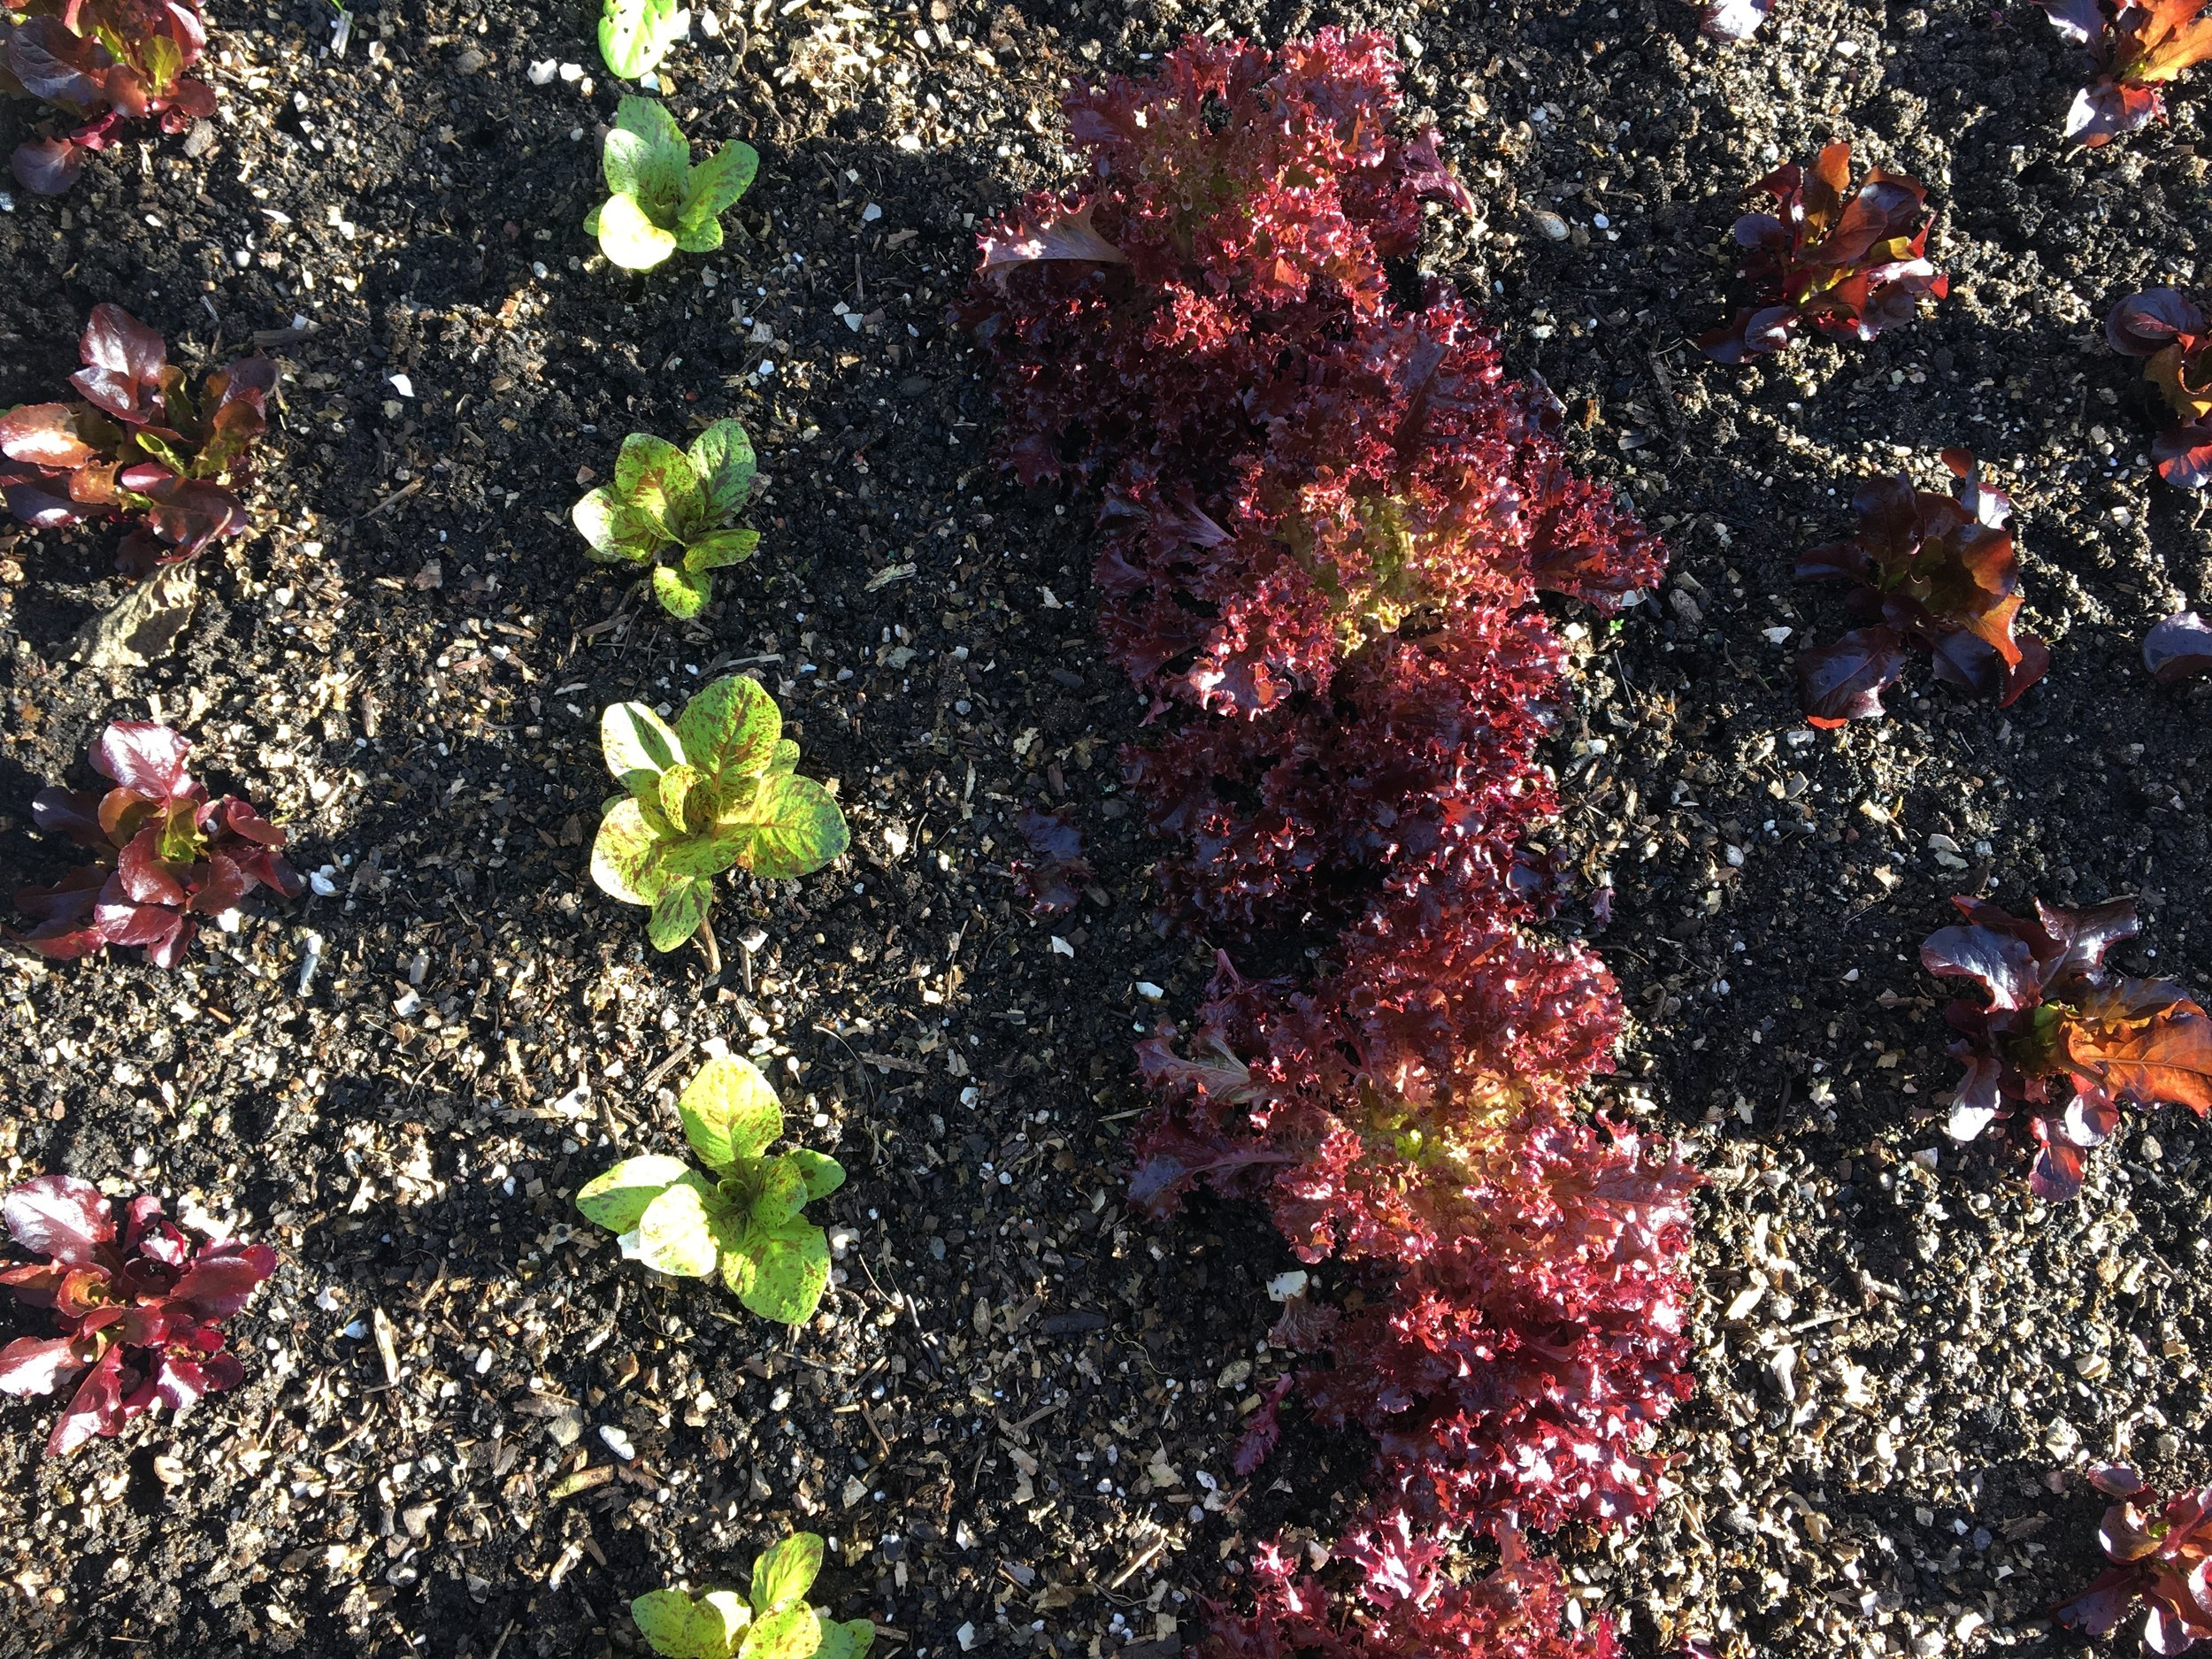 Bed 4: 'Sea of Red' lettuce, 'Flashy Troutback' (Freckles) lettuce, 'Lolla Rossa' lettuce